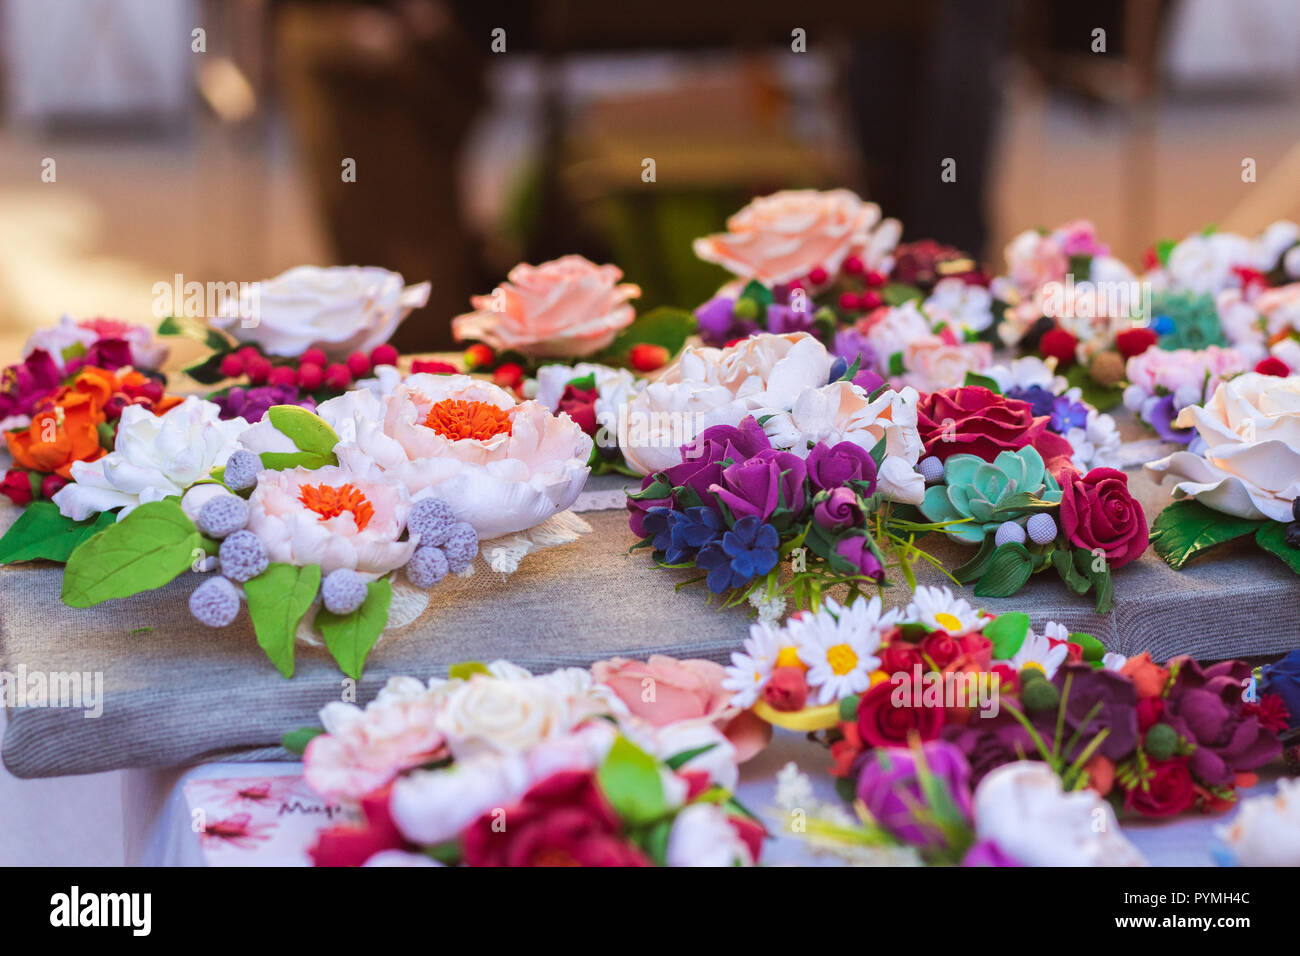 A large number of colorful artificial flowers - Stock Image